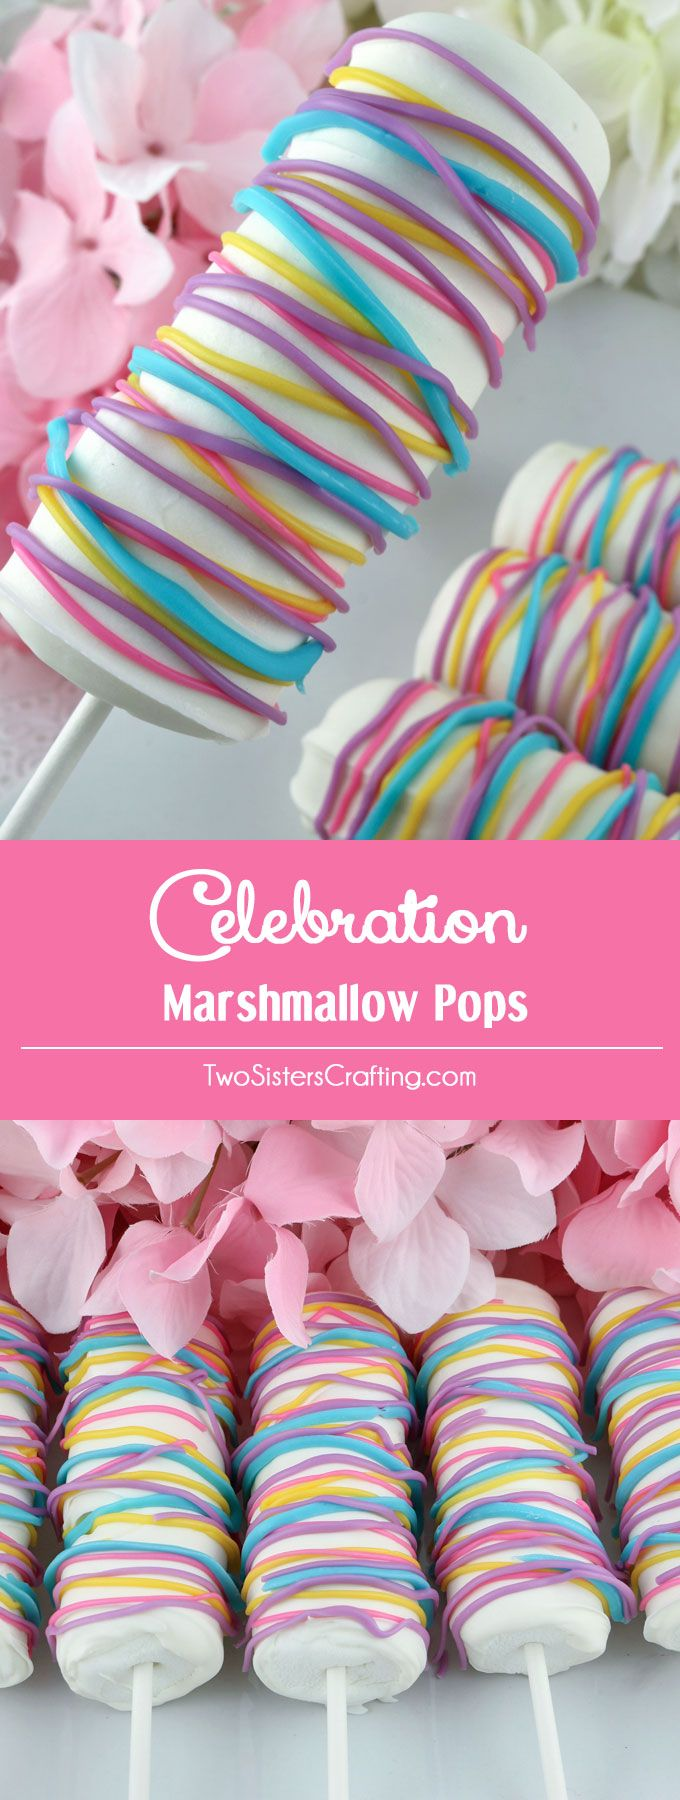 Celebration Marshmallow Pops #chocolatepops